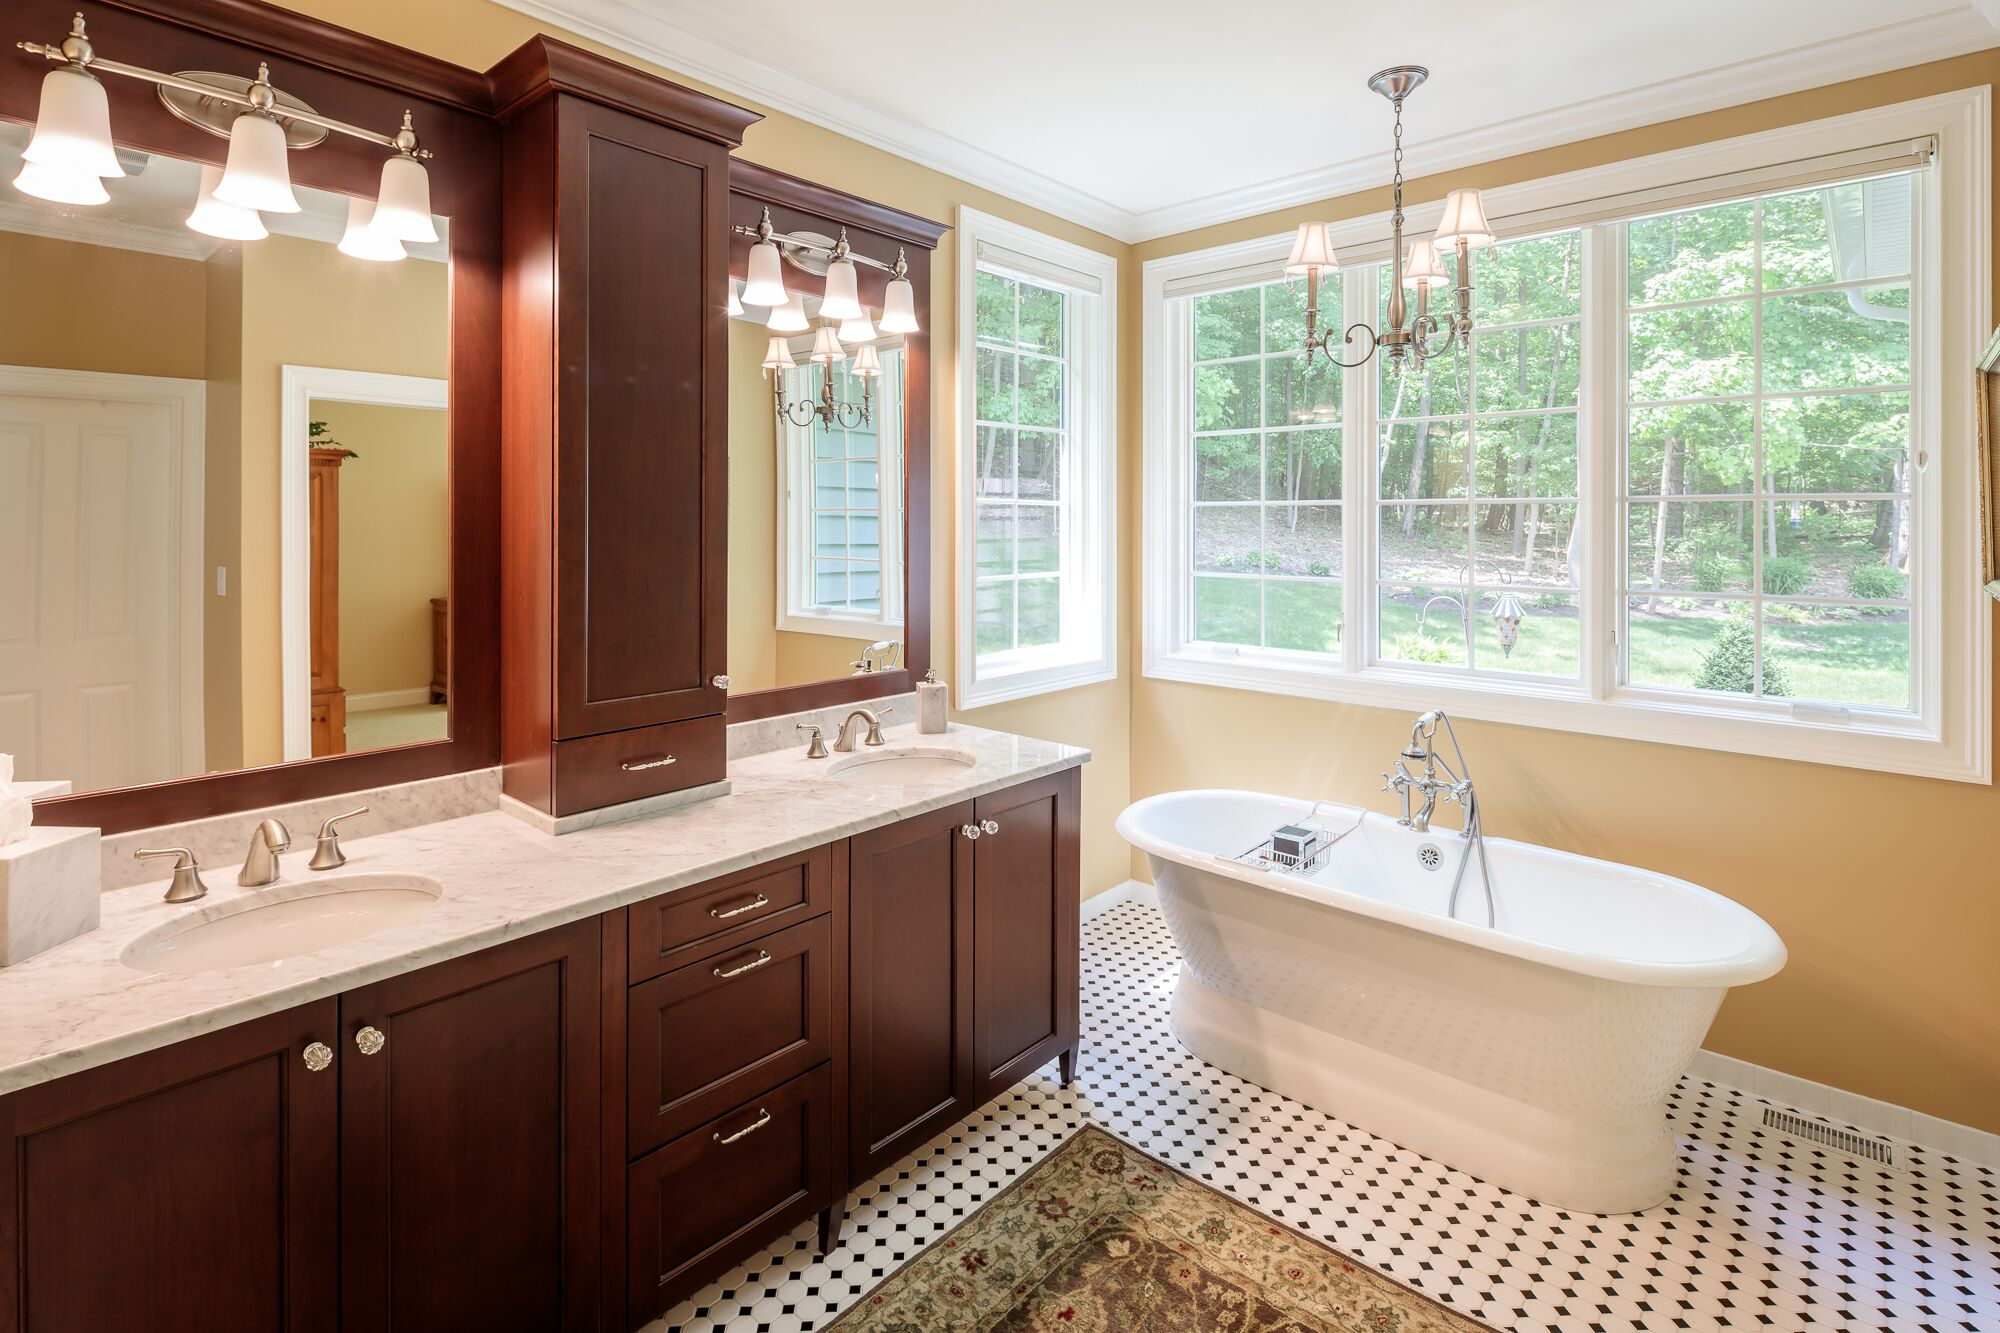 Ideas for bathrooms in a new house   Woodstone Custom Homes   Pittsford, NY